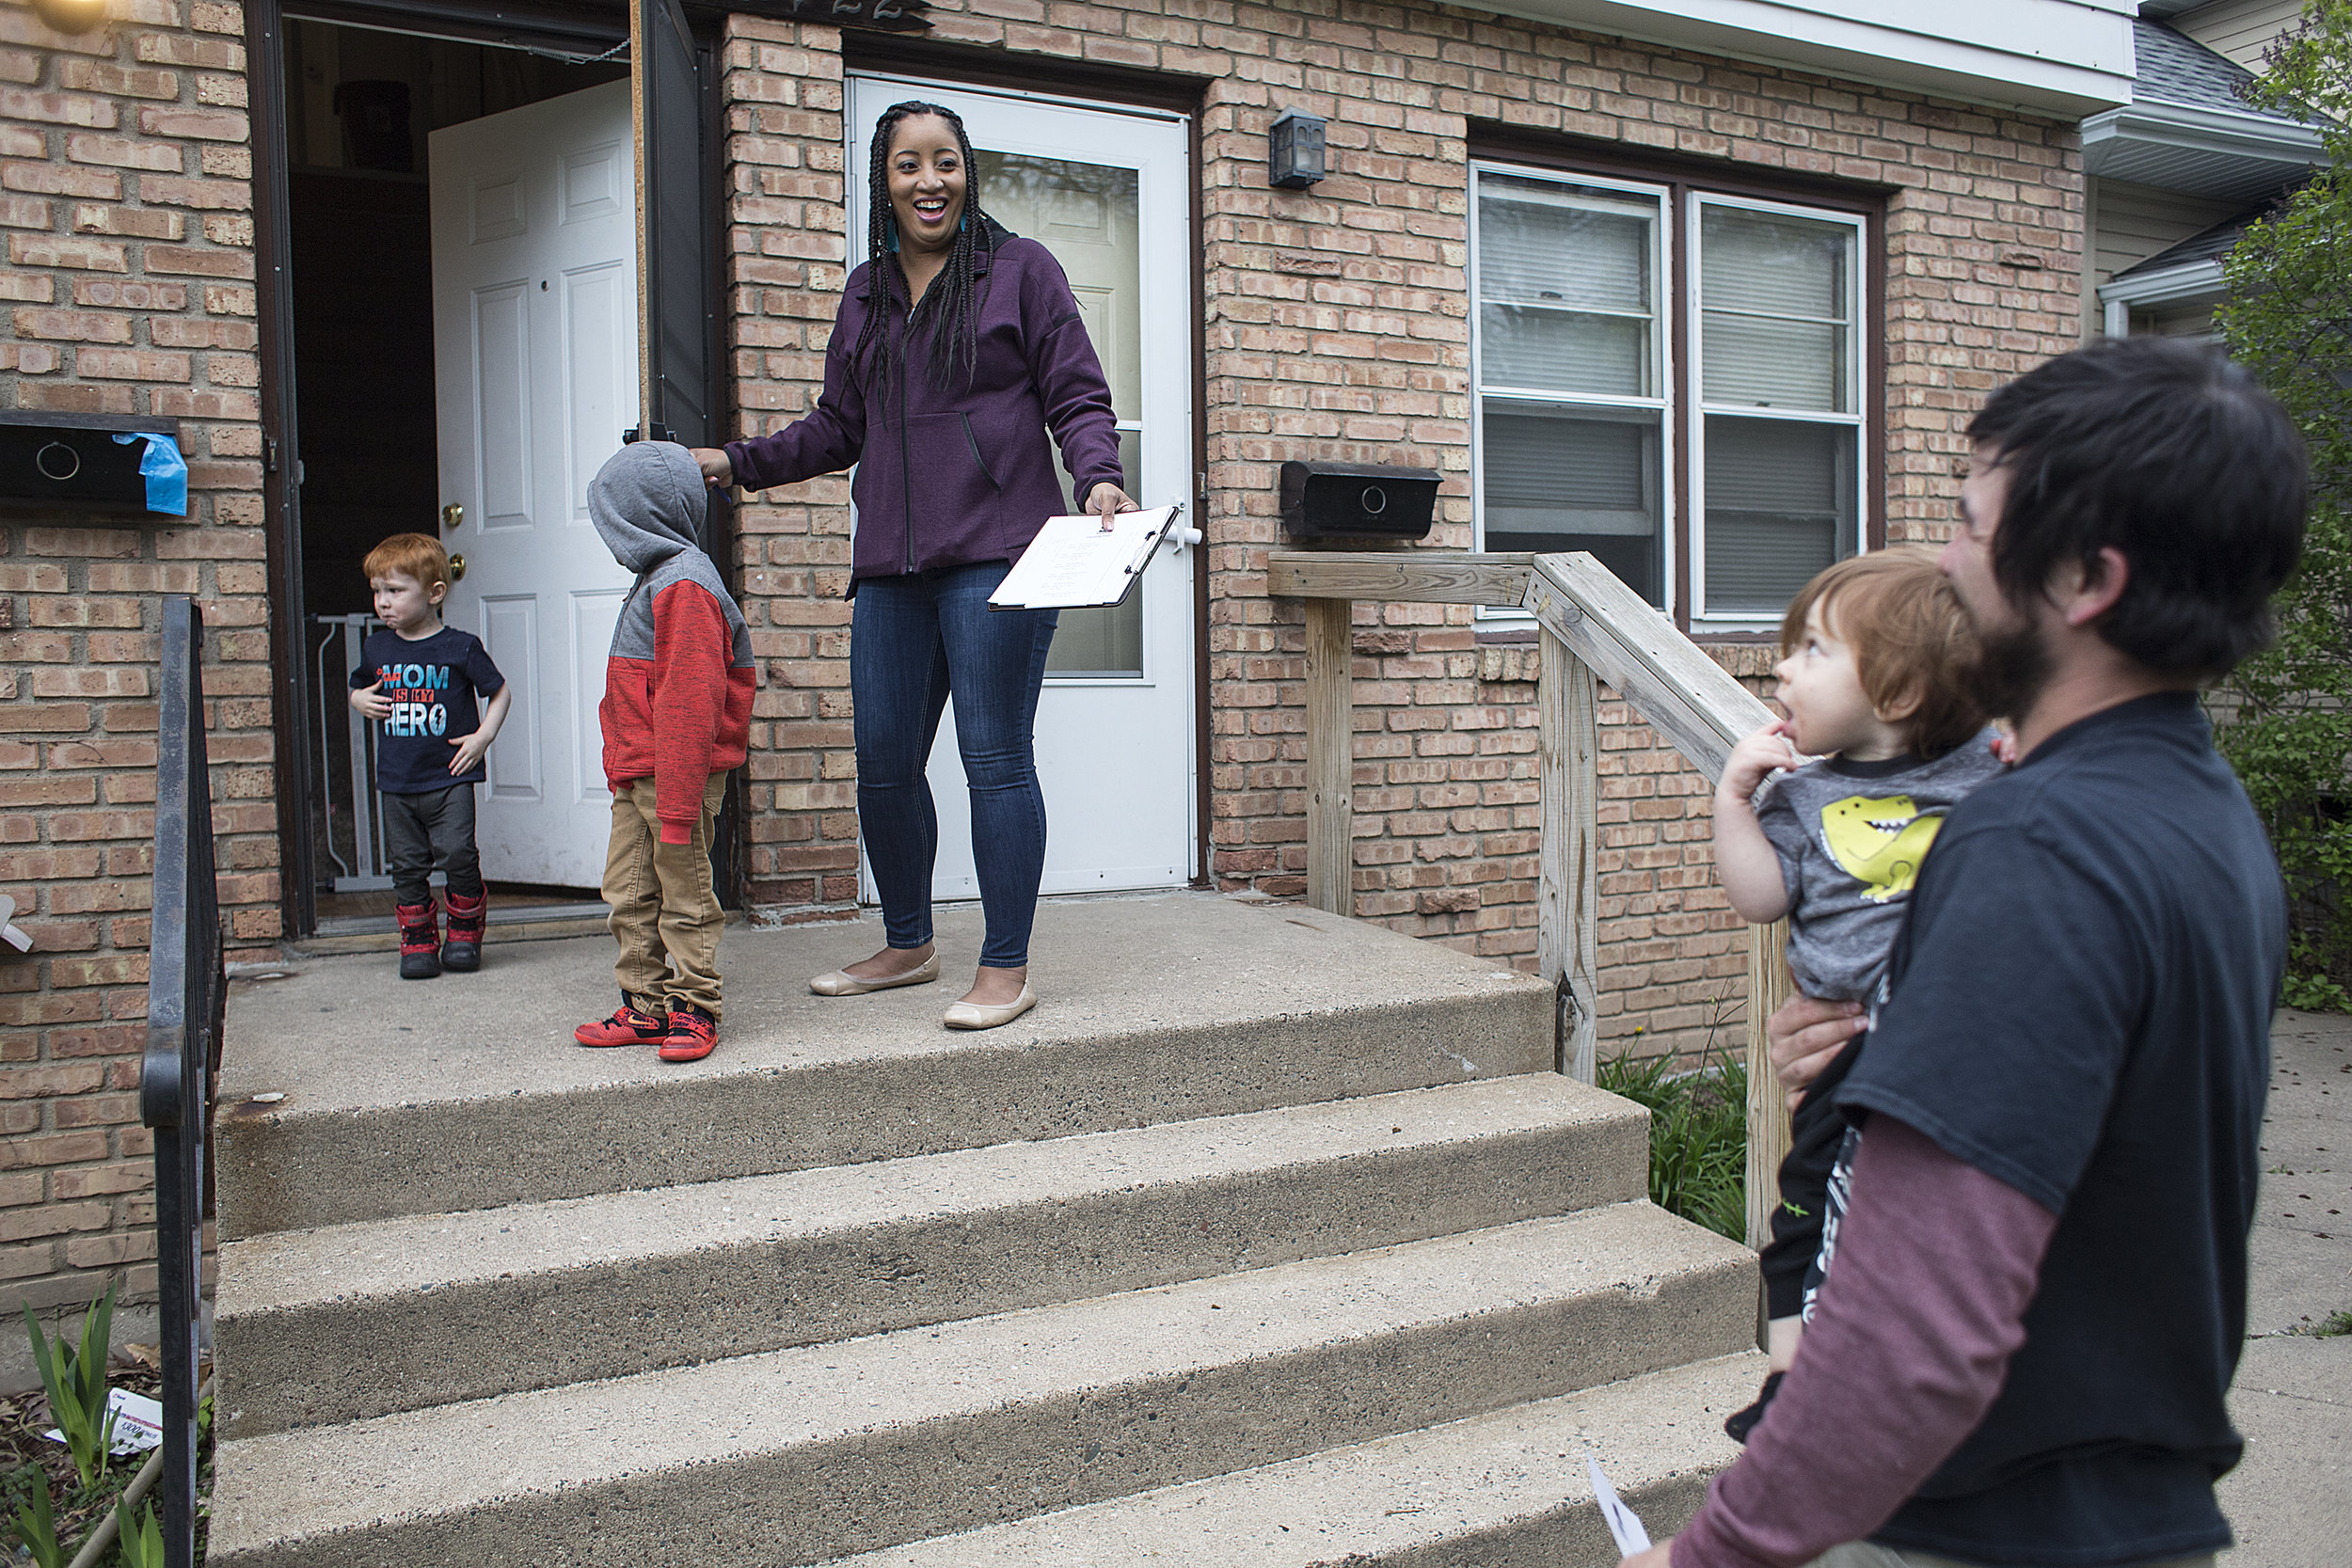 """McKinley Community's new executive director Markella Smith has spent her spring evenings doorknocking in the neighborhood with her young sons. She says her goals are to """"Show my kids something different and make some changes on the Northside that positively impact the people that are here."""" Photo by David Pierini"""